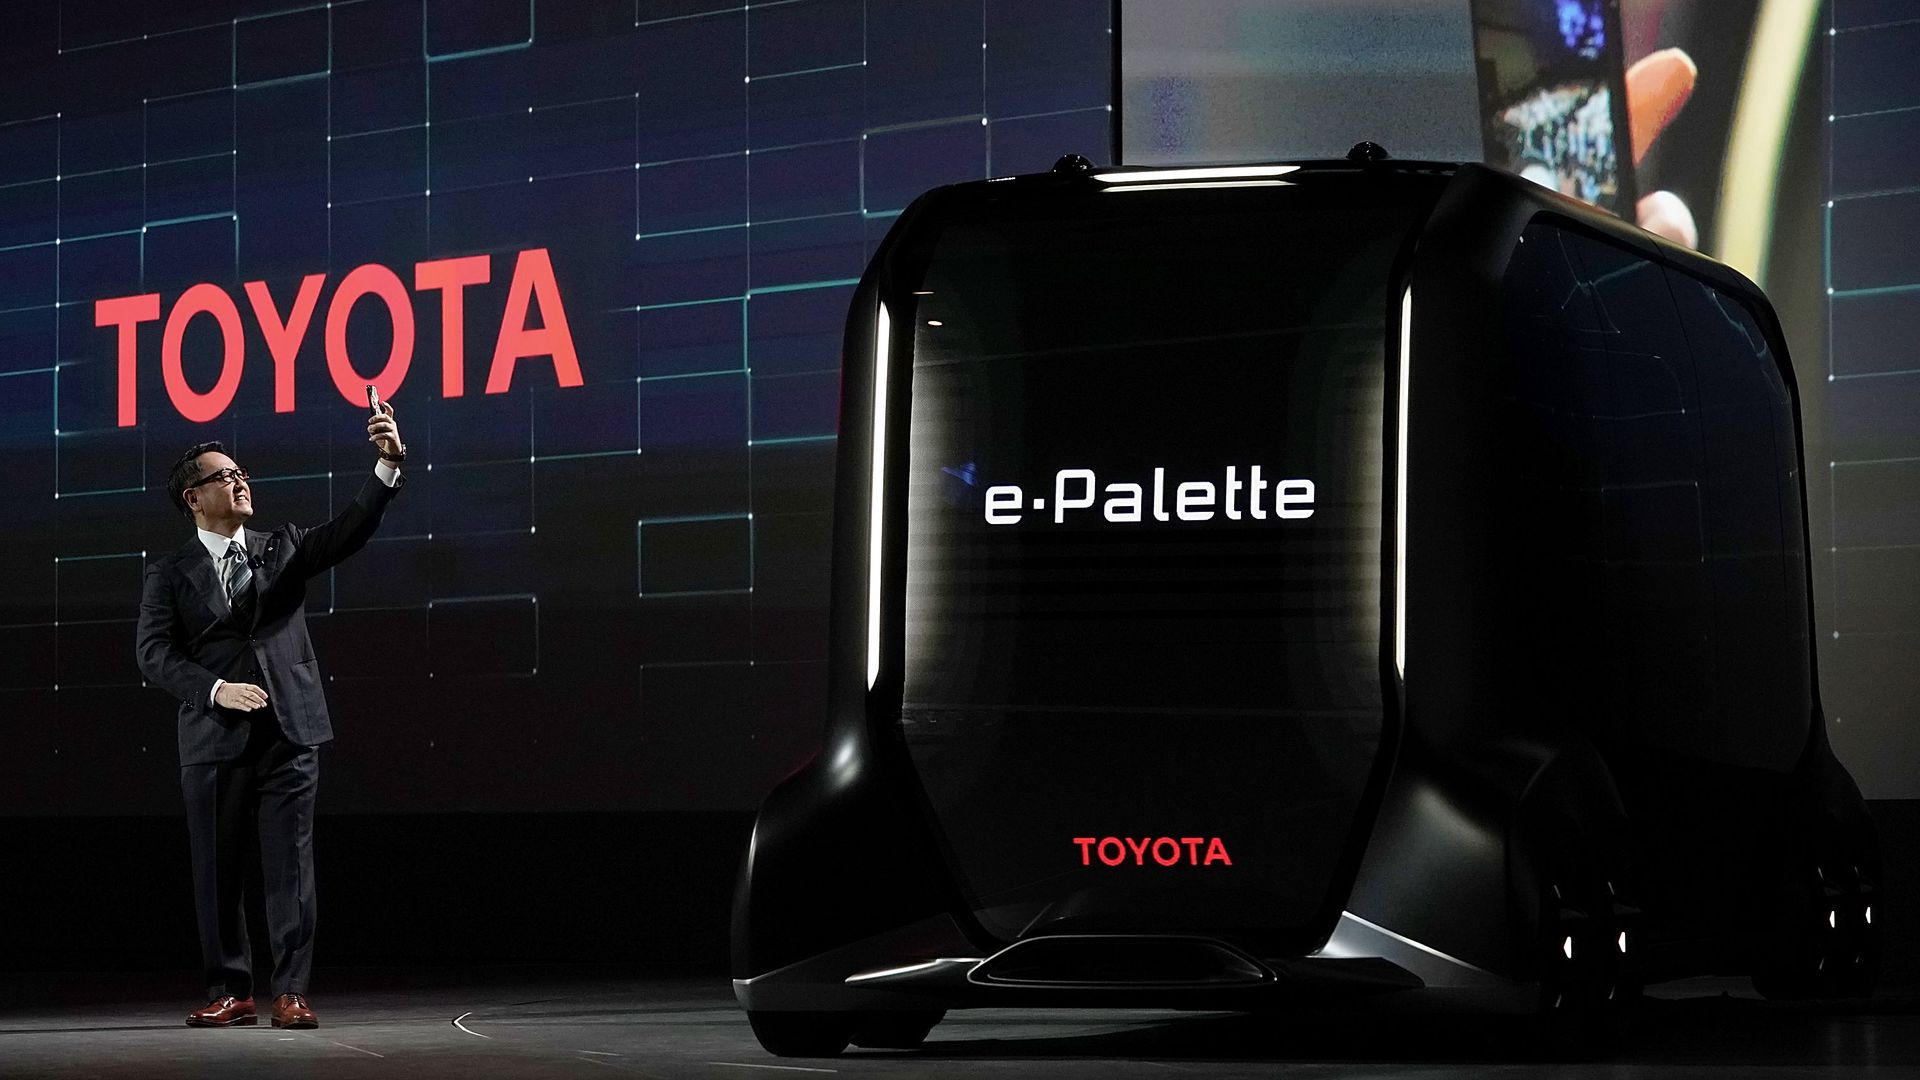 President of Toyota Motor Corporation and the e-Palette Concept Vehicle.